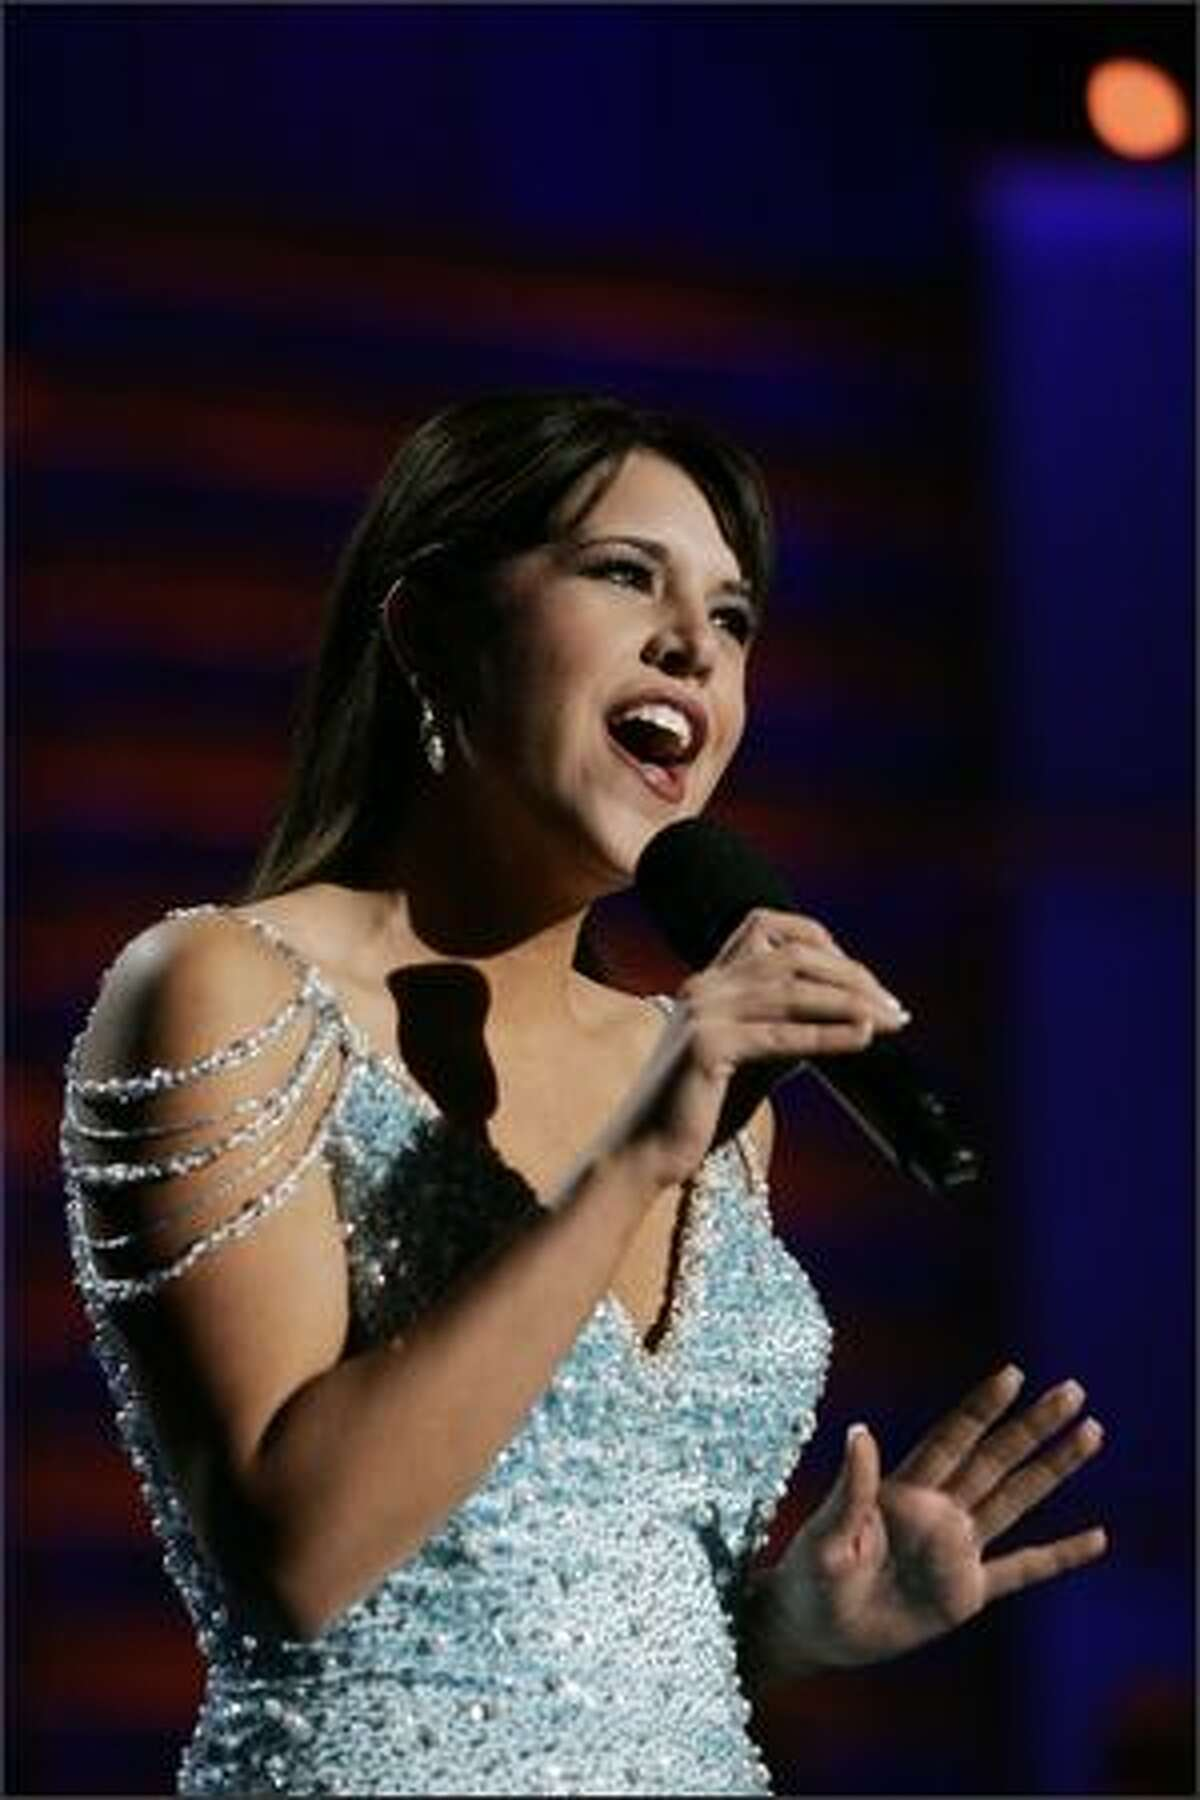 Miss Connecticut Dana Elaine Daunis was Thursday night's preliminary talent winner for her vocal performance